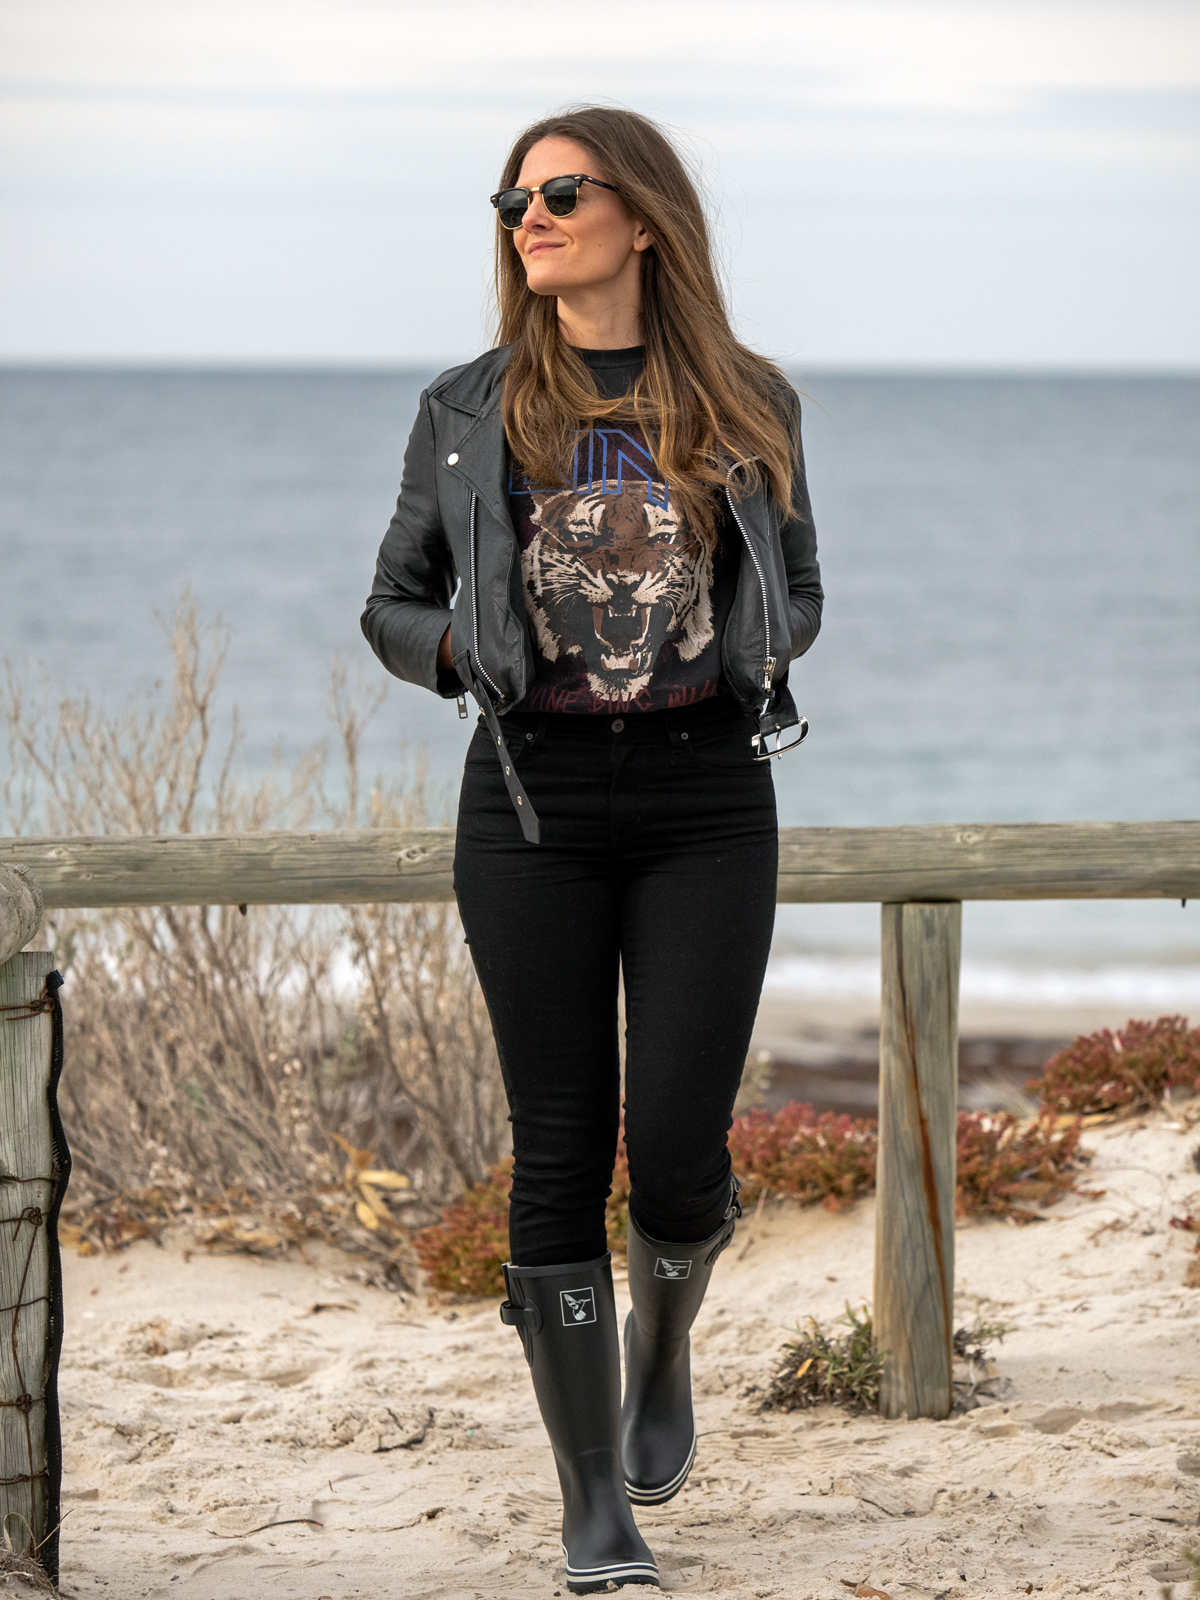 Winter outfit ideas black leather jacket, Anine Bing Tiger t-shirt, Mavi black skinny jeans, Evercreatures black gumboots worn by Inspiring Wit blogger Jenelle